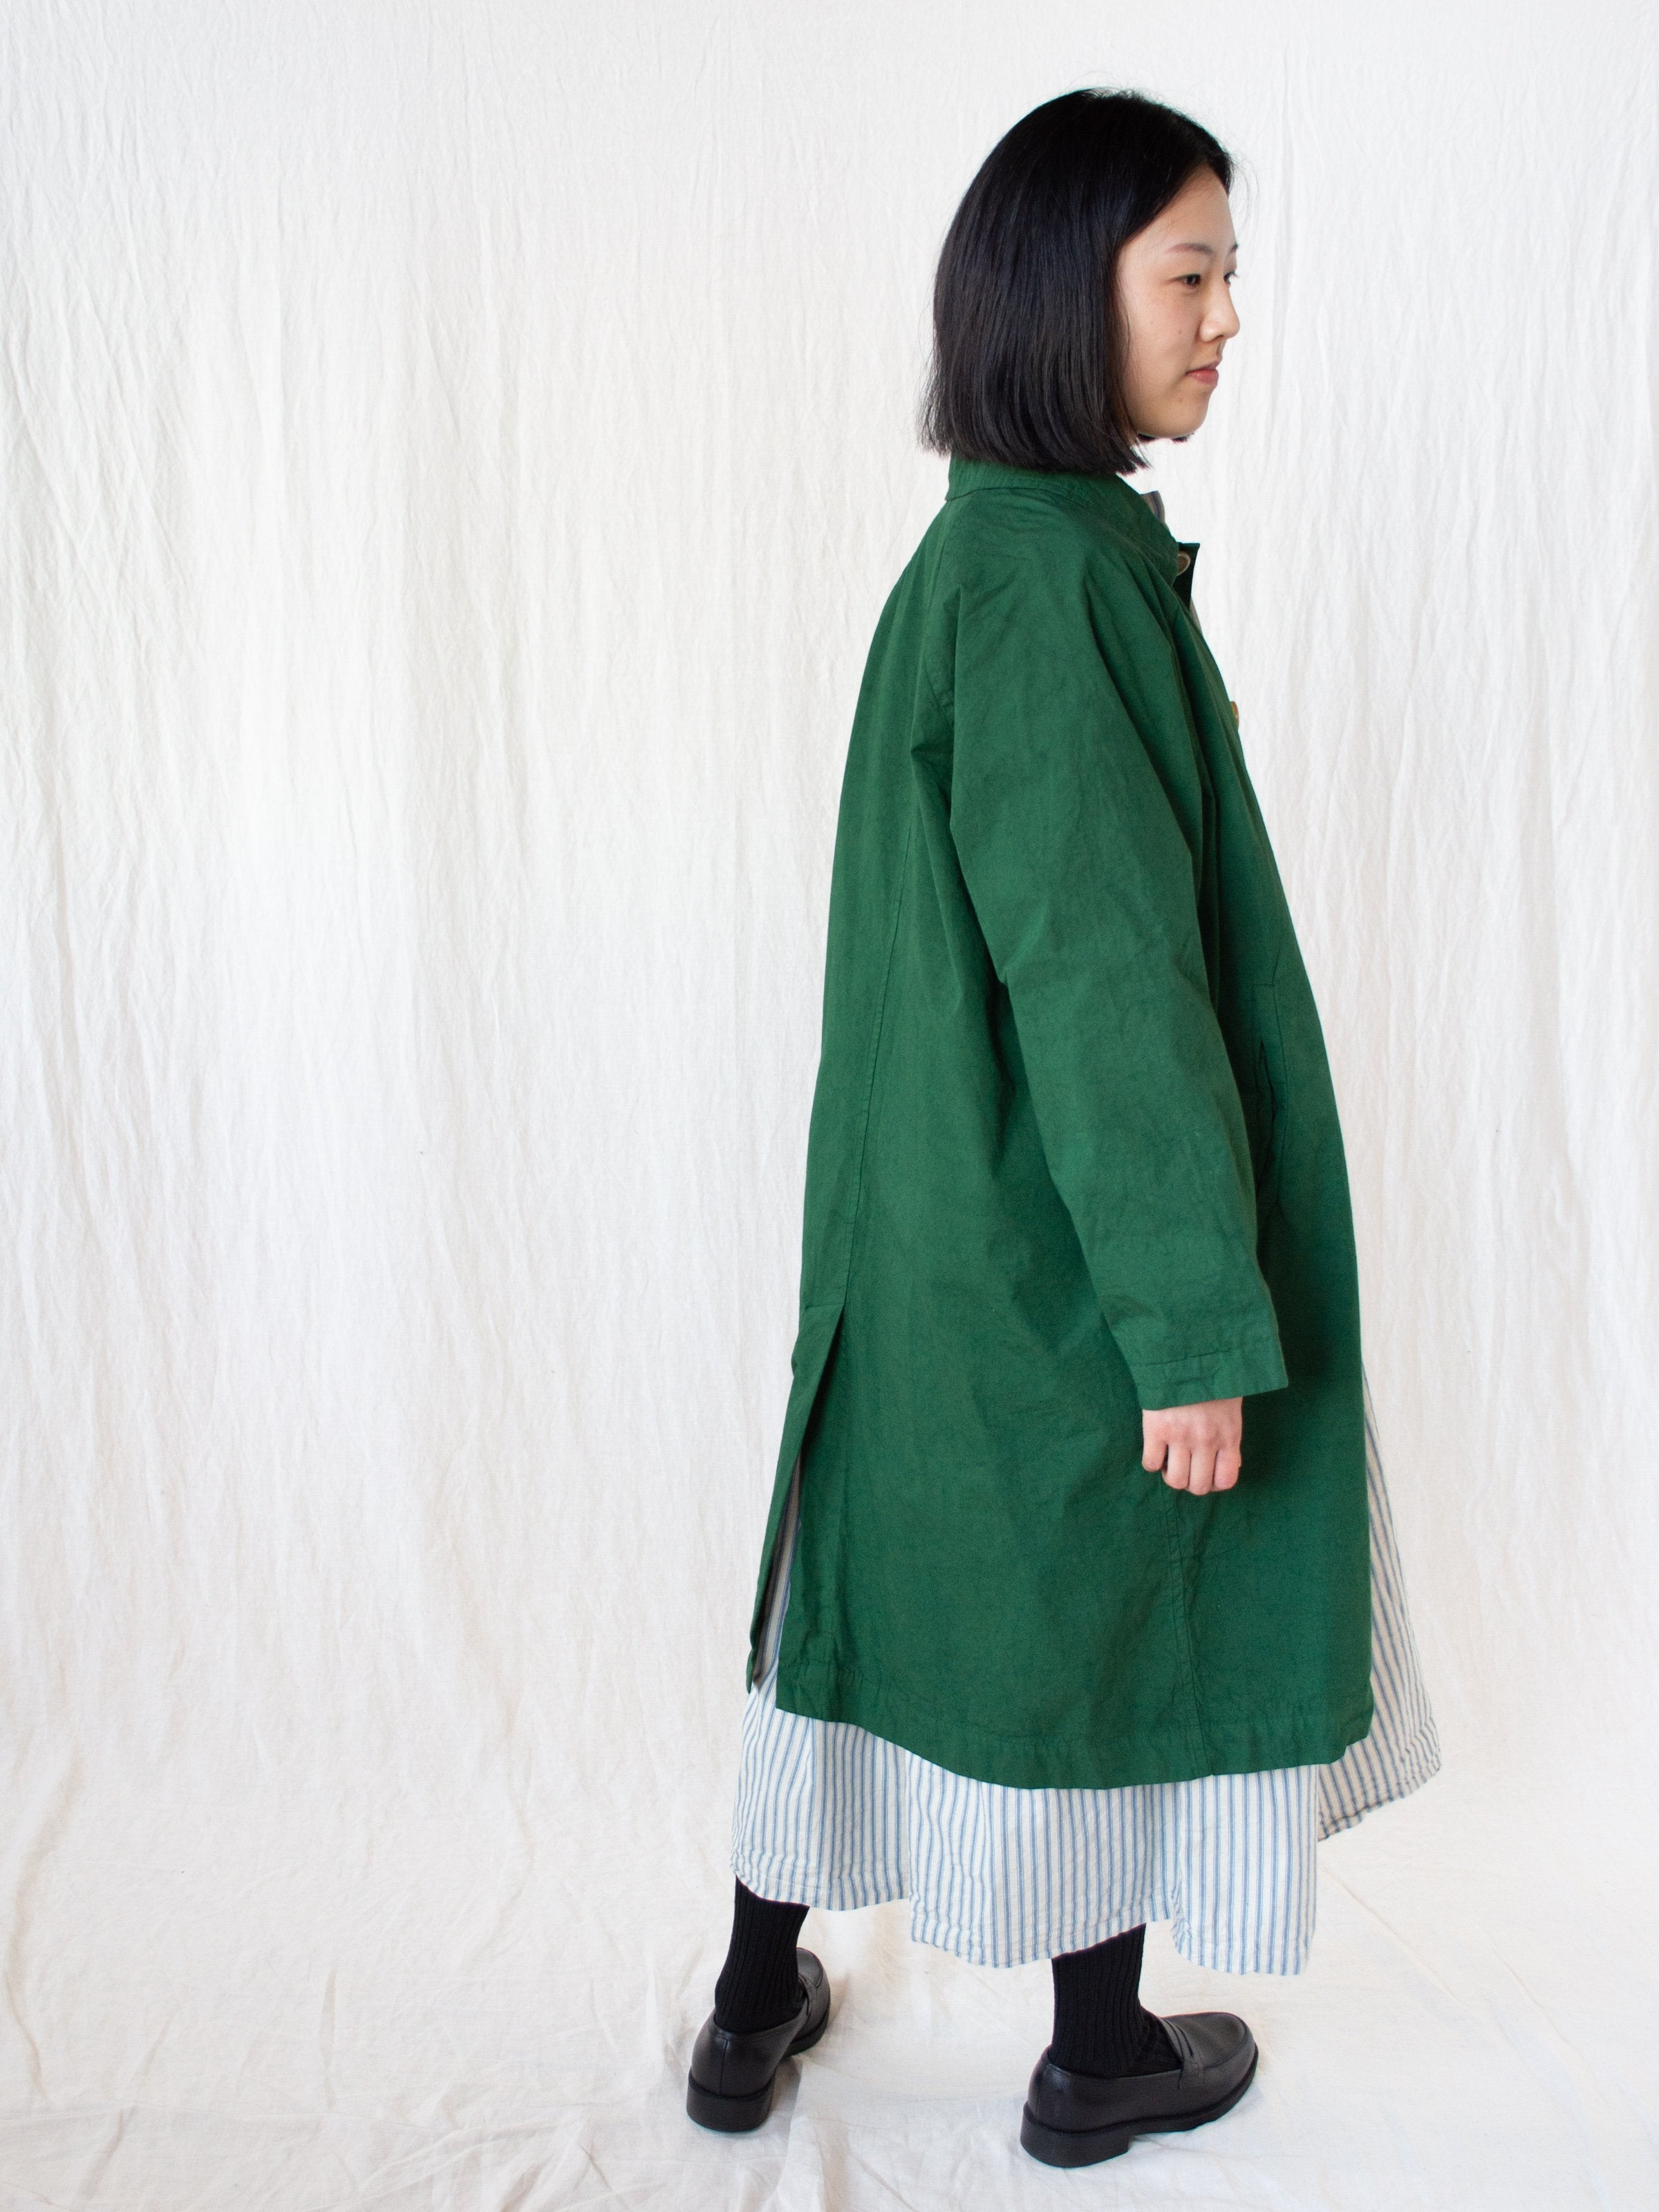 Namu Shop - Veritecoeur Typewriter Cotton Coat